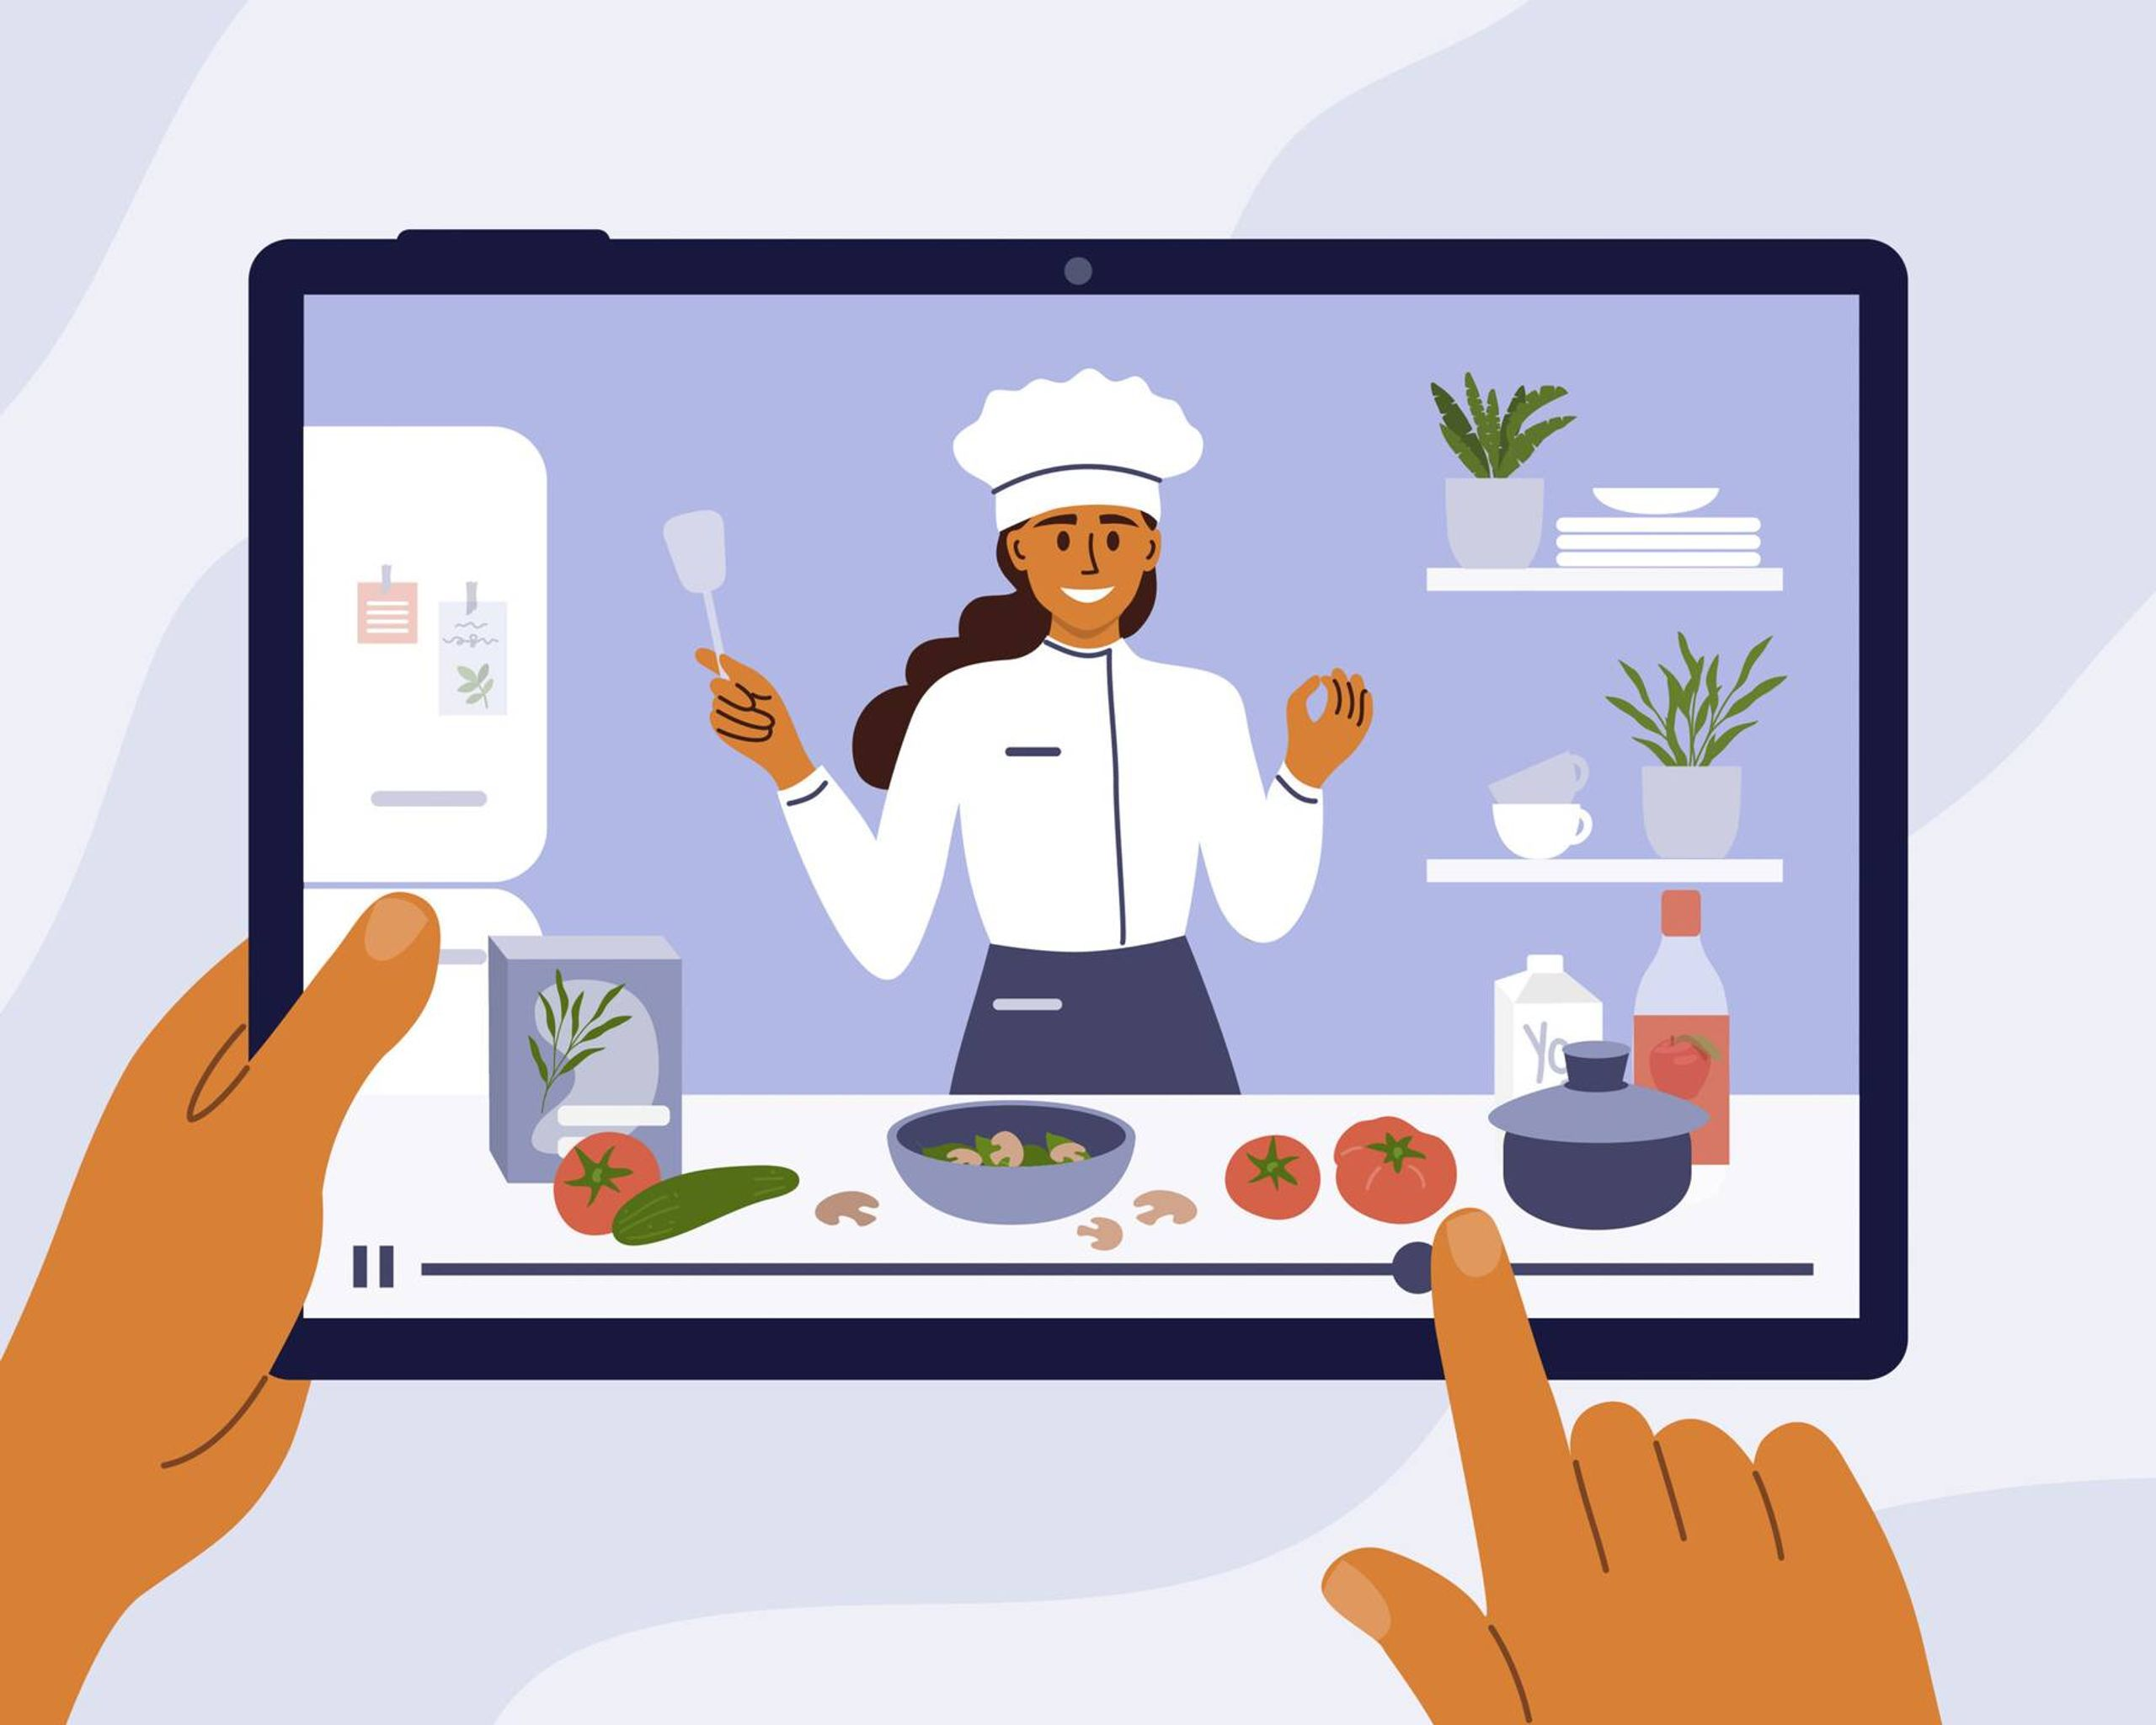 Hands interact with online cooking class on mobile device. Rewire PBS Health Loneliness